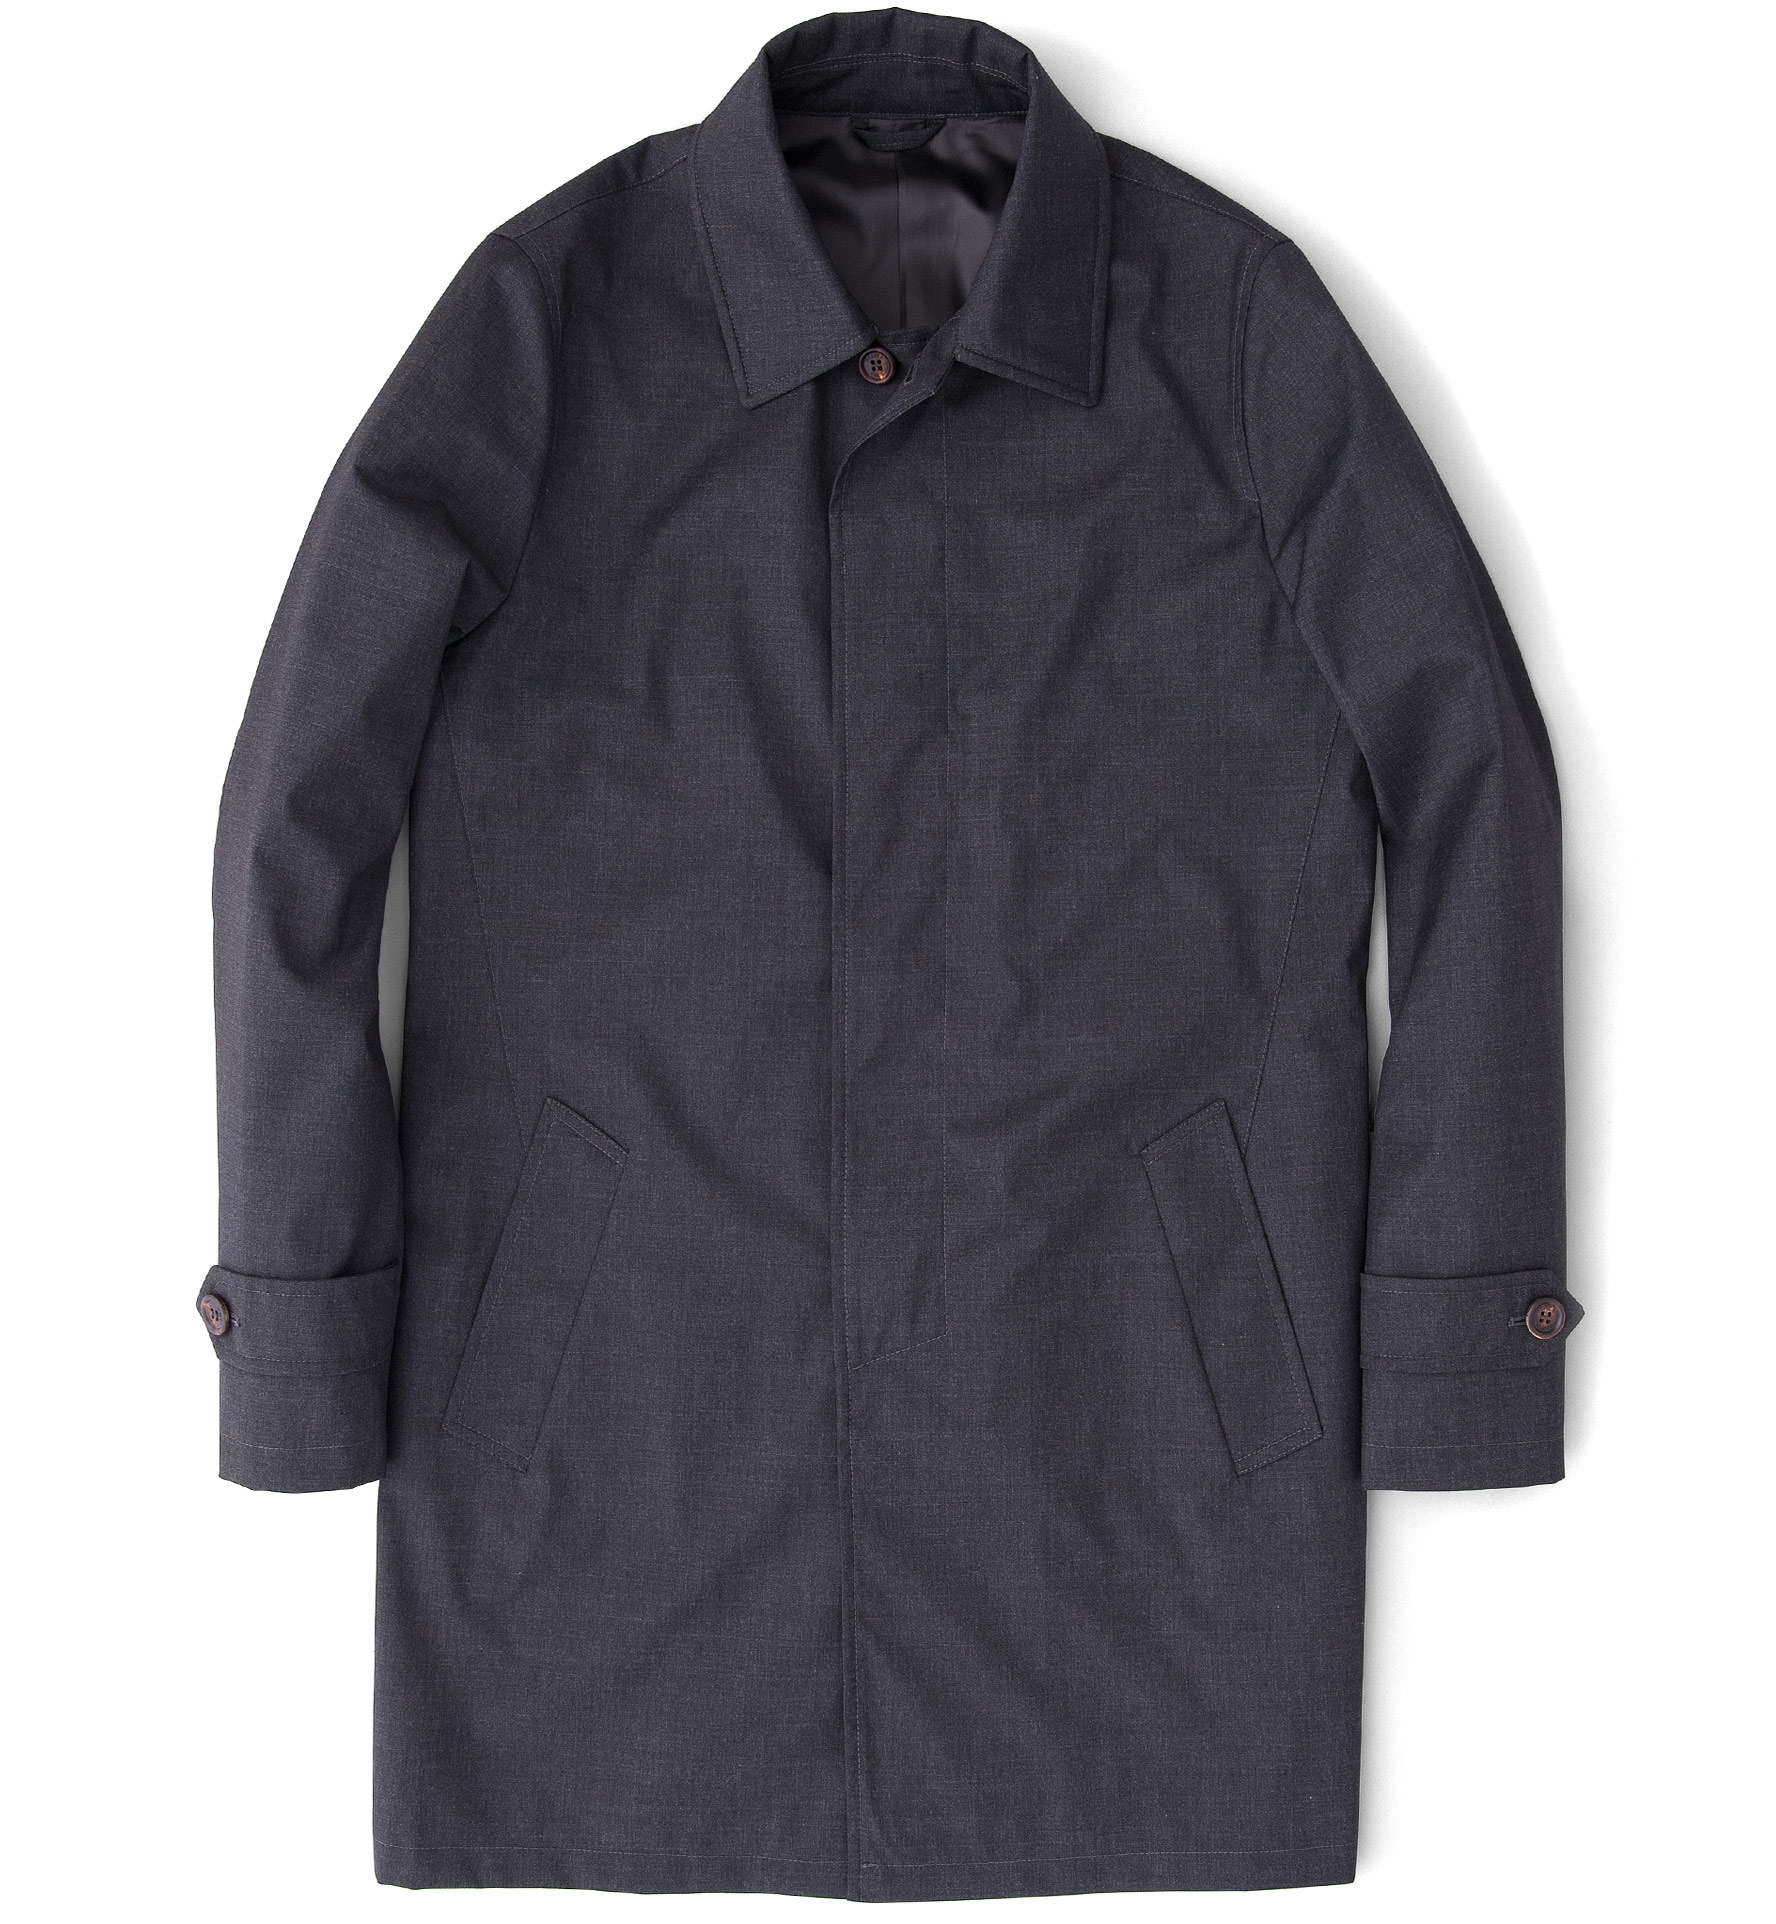 Zoom Image of Lazio Storm System Charcoal Raincoat